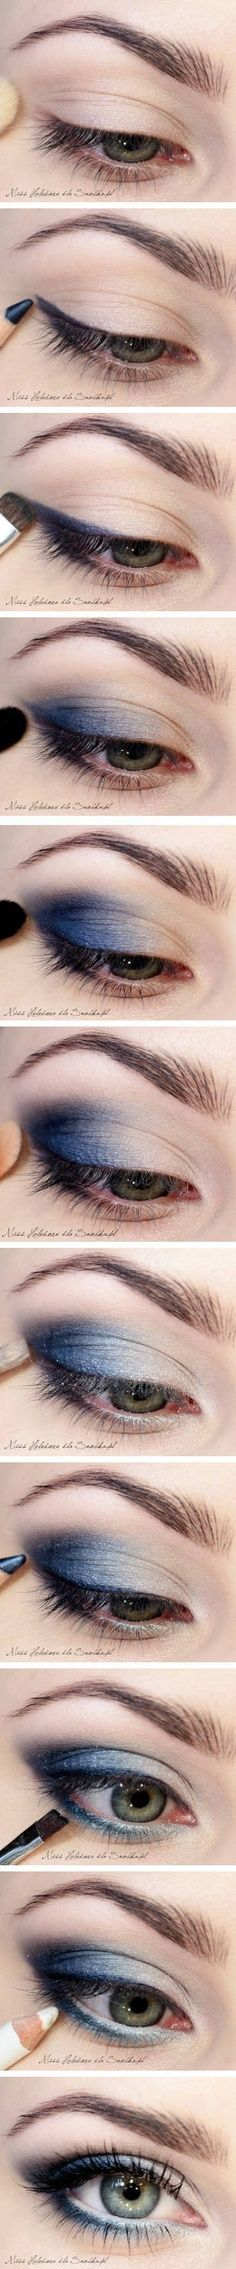 great and easy eye looks and makeup artist tricks! the best beauty tips and tricks!: